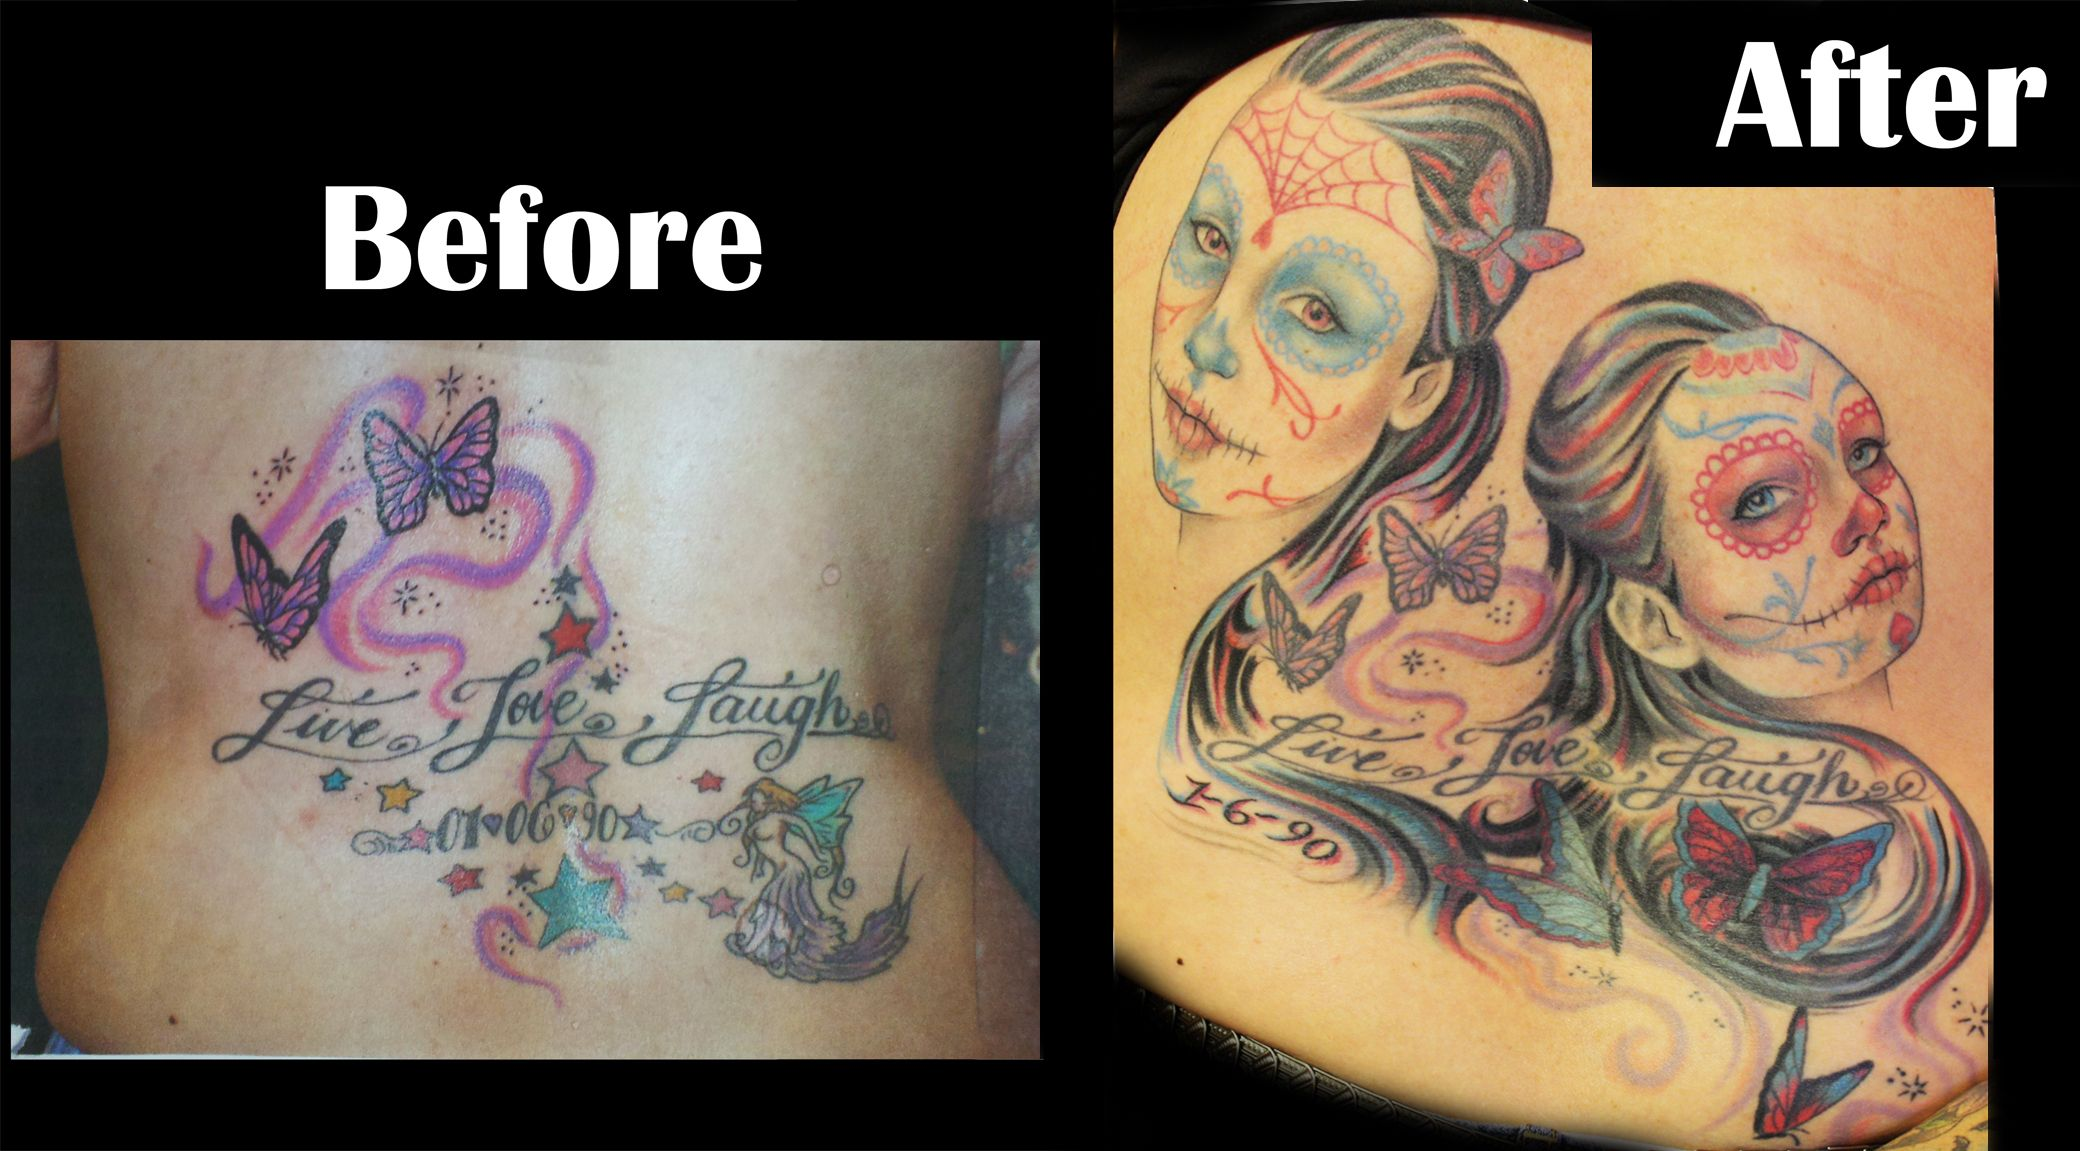 Before and after tattoo cover up tattoo sugar skulls